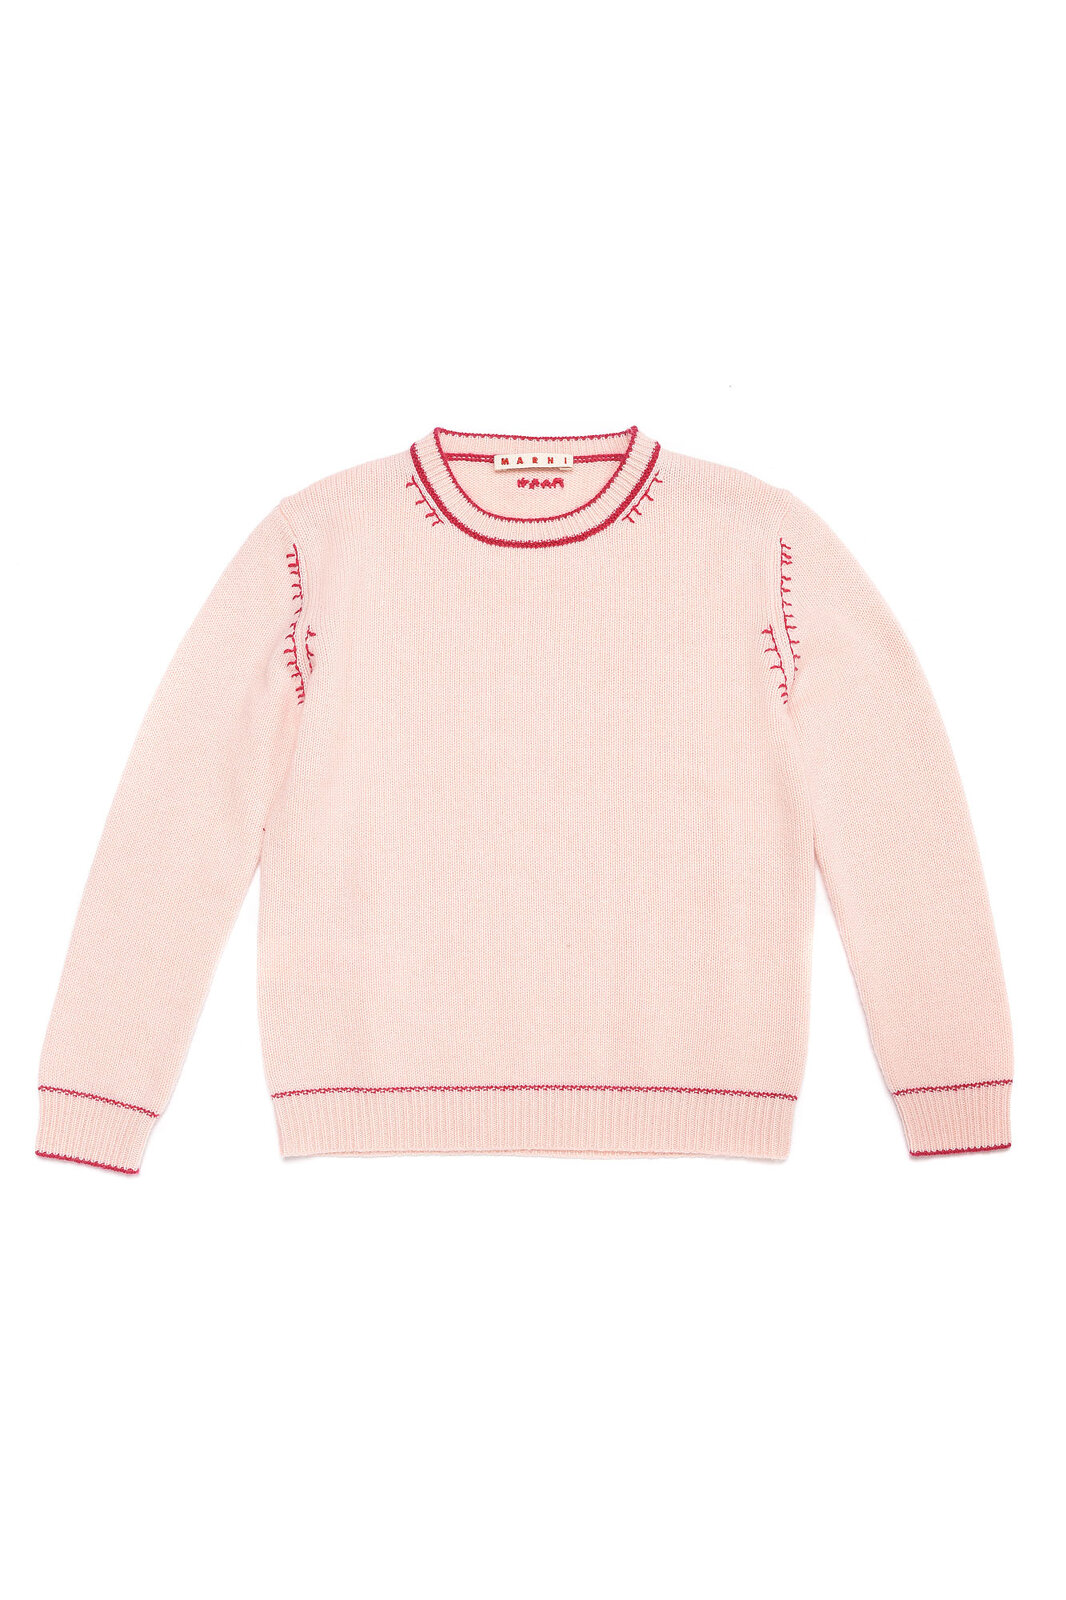 Mesh - Marni Junior